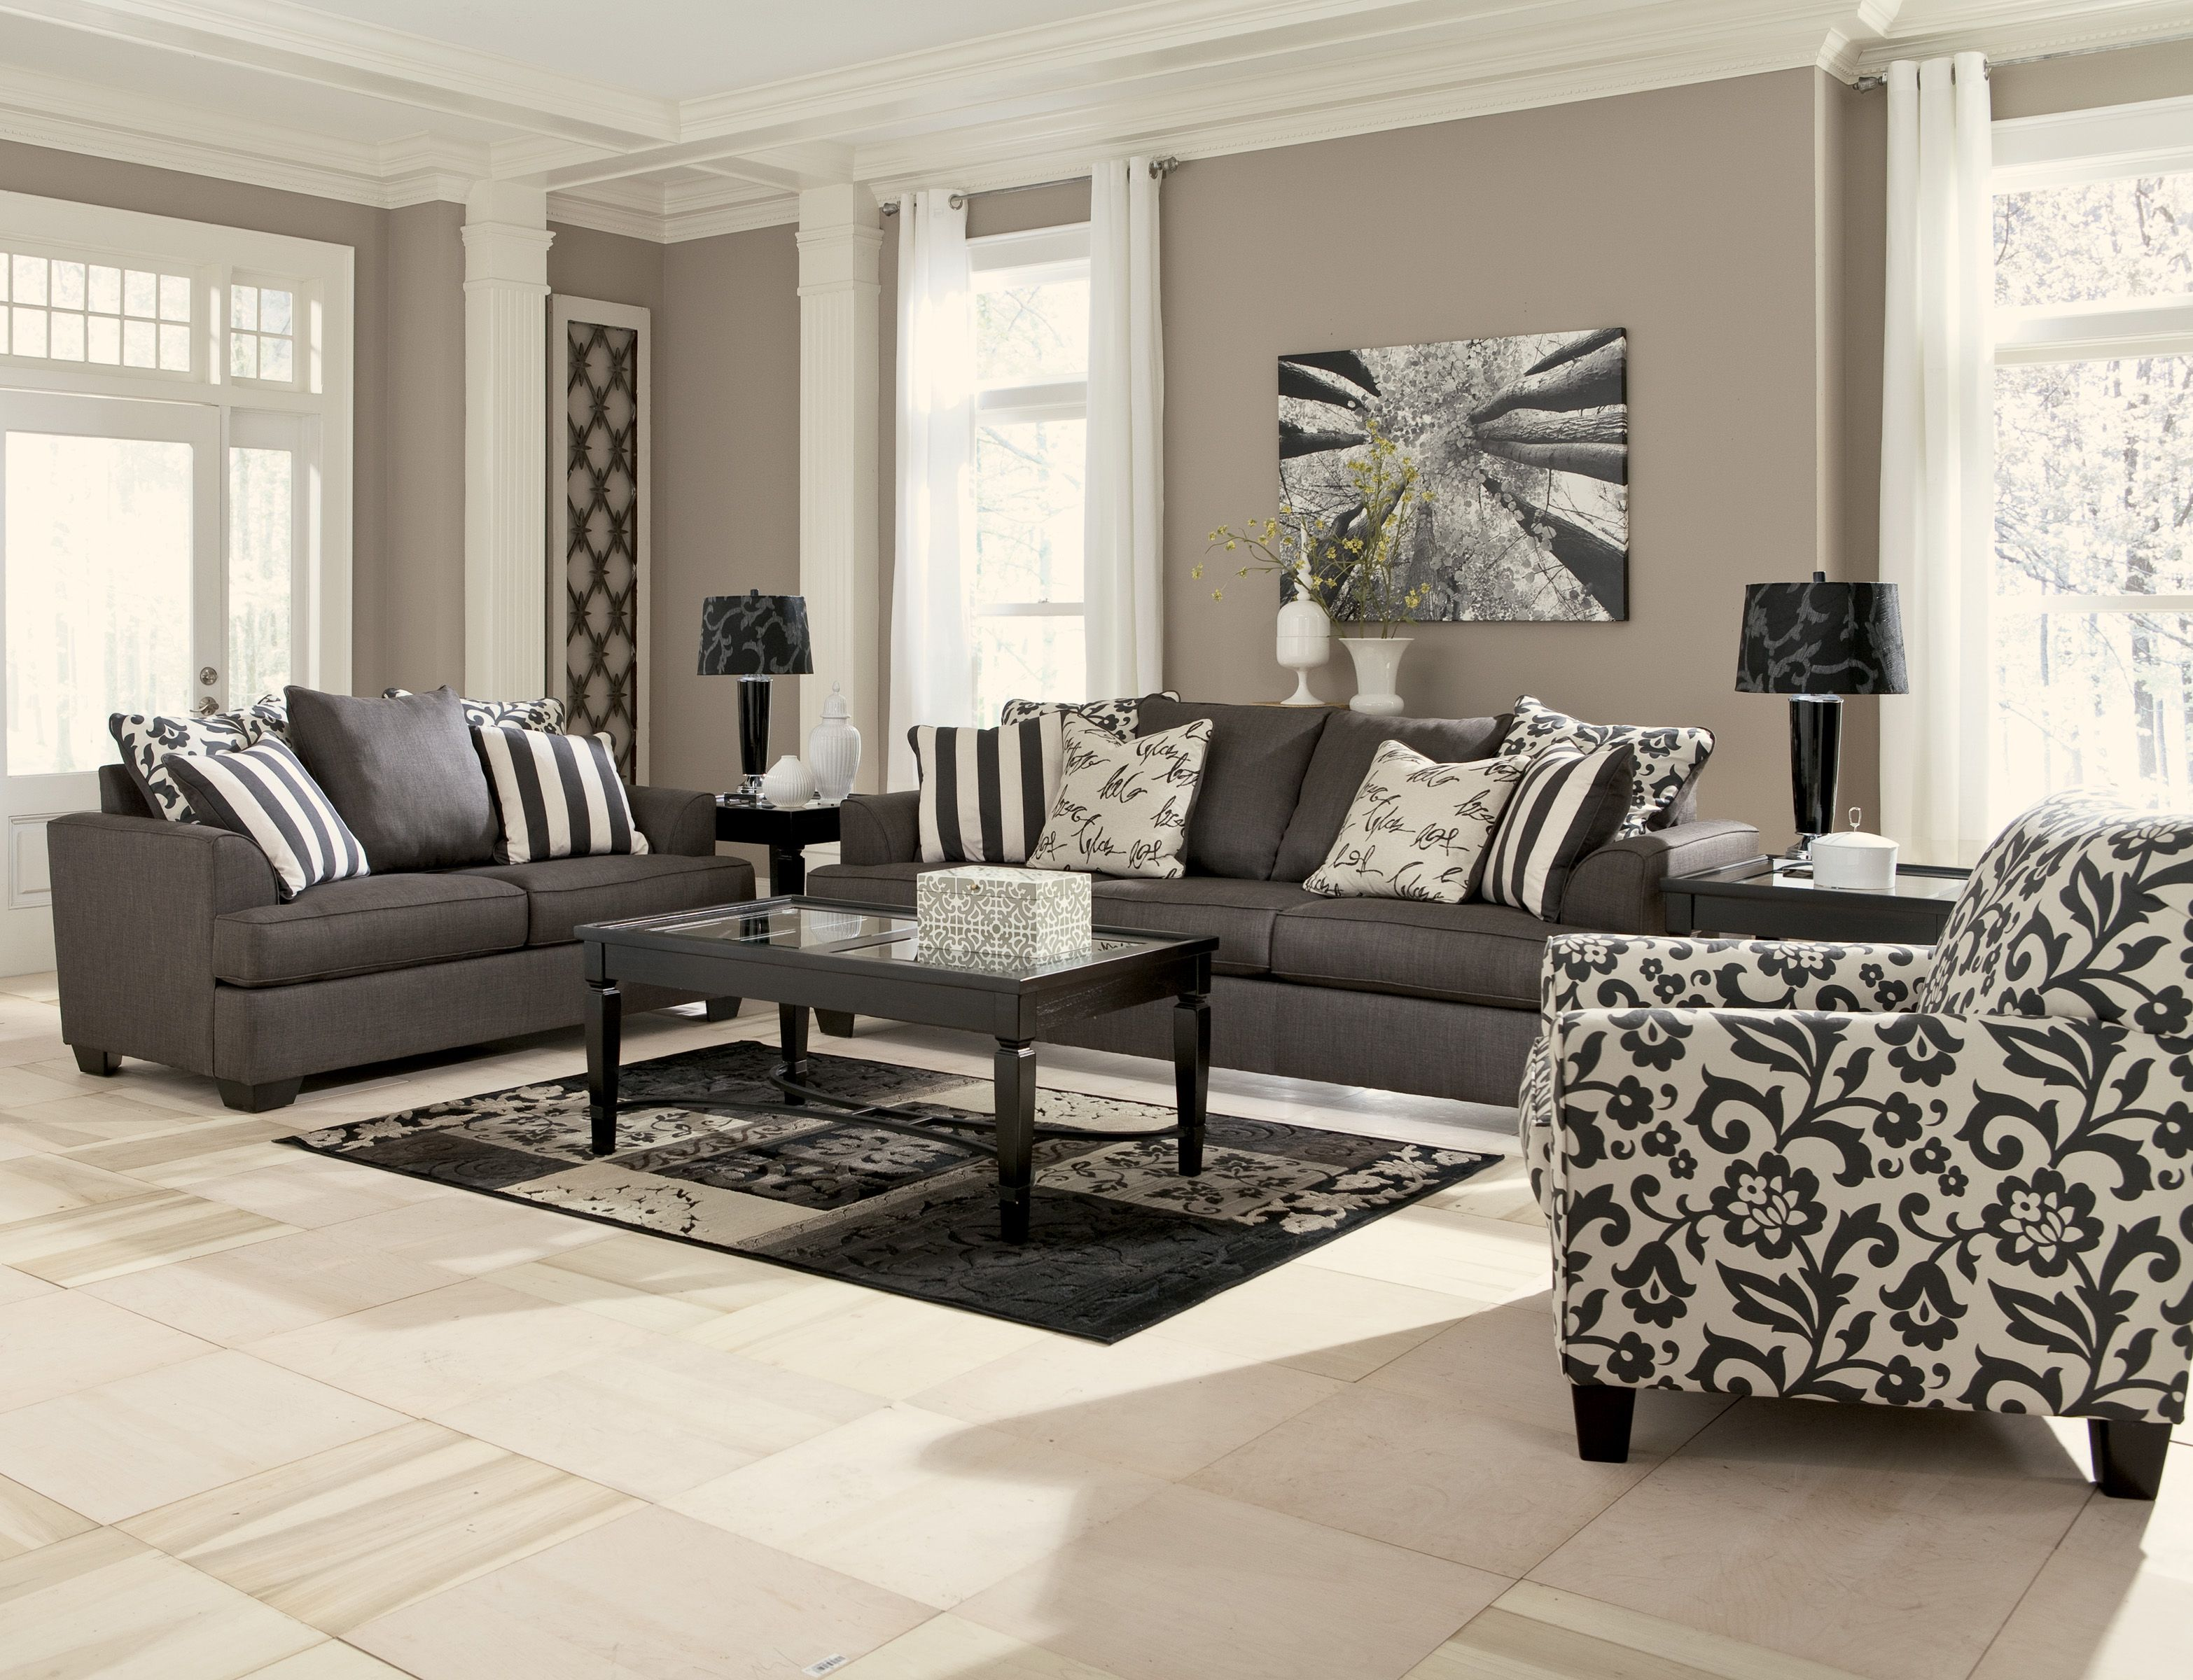 Beautiful use of black white and gray www.smartbuysforthehome.com ...